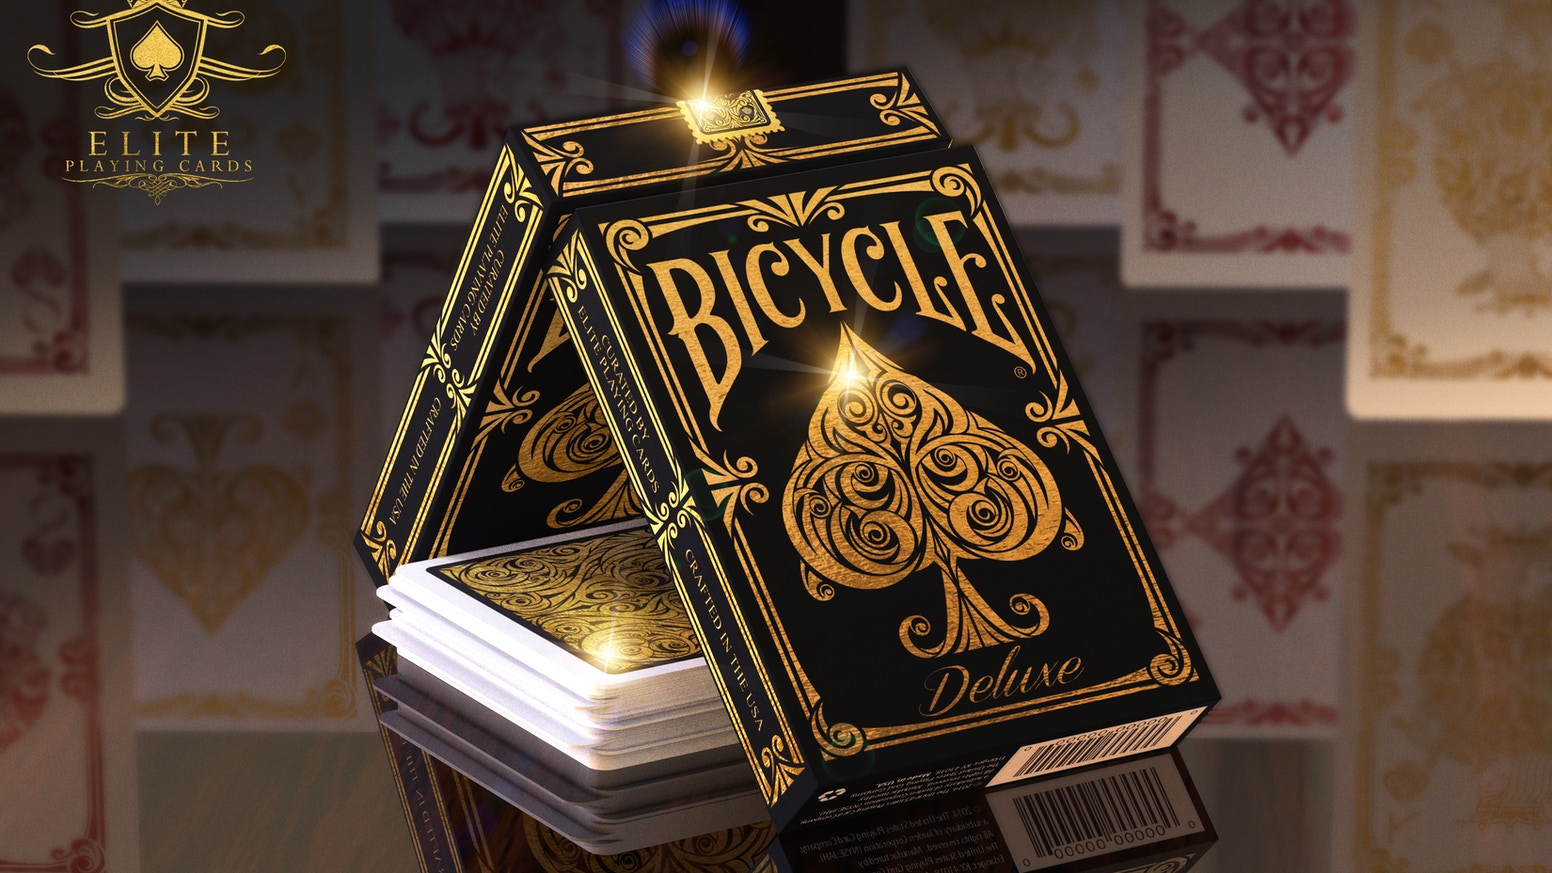 Bicycle® Deluxe. 56 Luxury Hand-Illustrated Playing Cards. Elite's Signature Collection. Limited Edition.